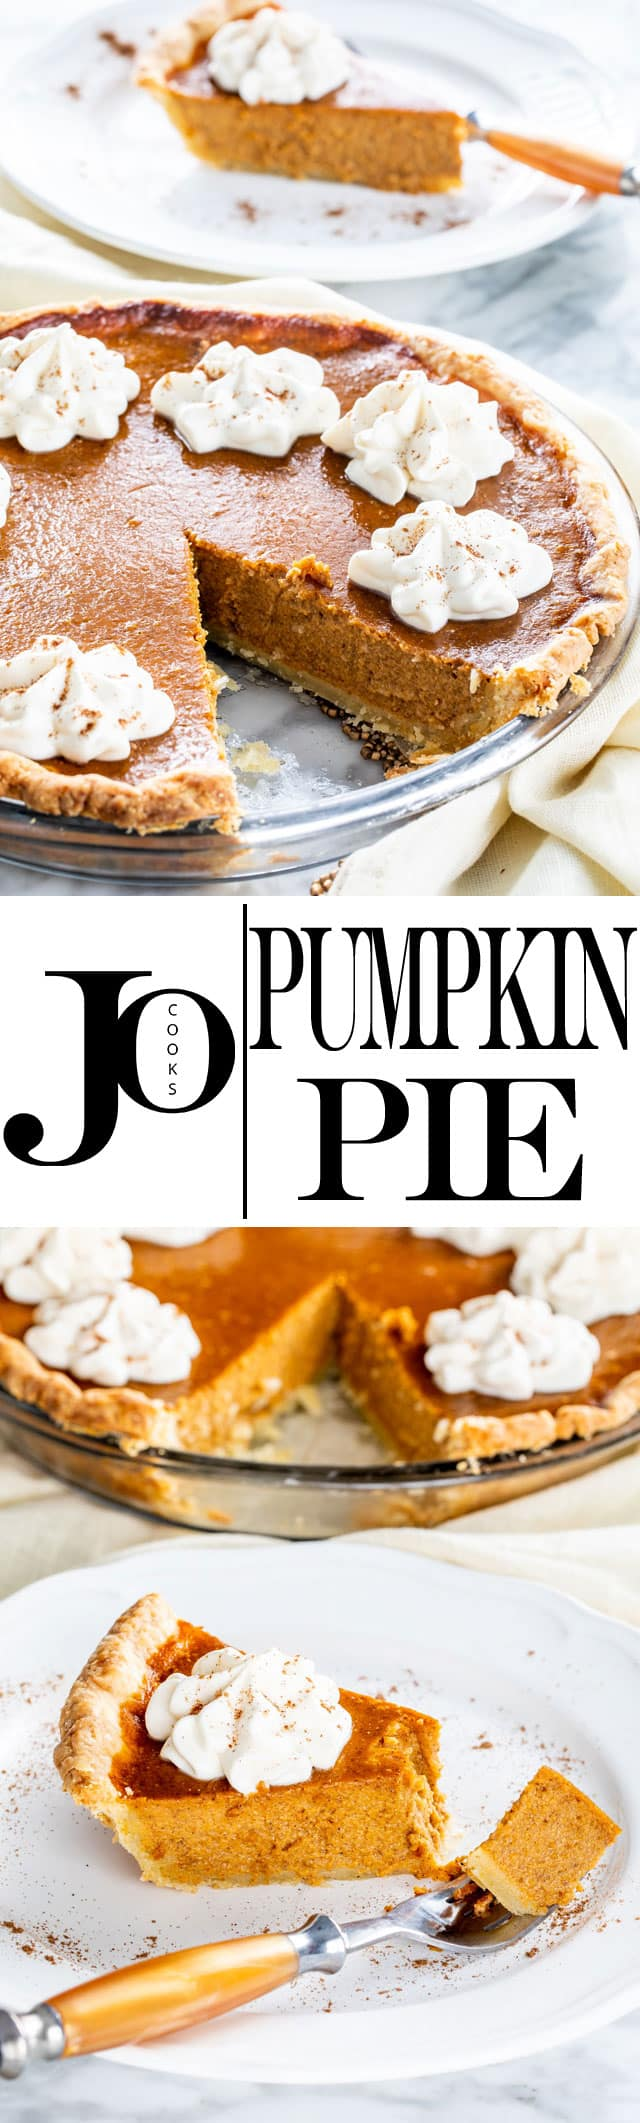 This Classic Pumpkin Pie is creamy, sweet and luscious! Completely homemade from the crust to the creamy filling. It's utterly delicious and begging to be the star of your Thanksgiving menu! #pumpkinpie